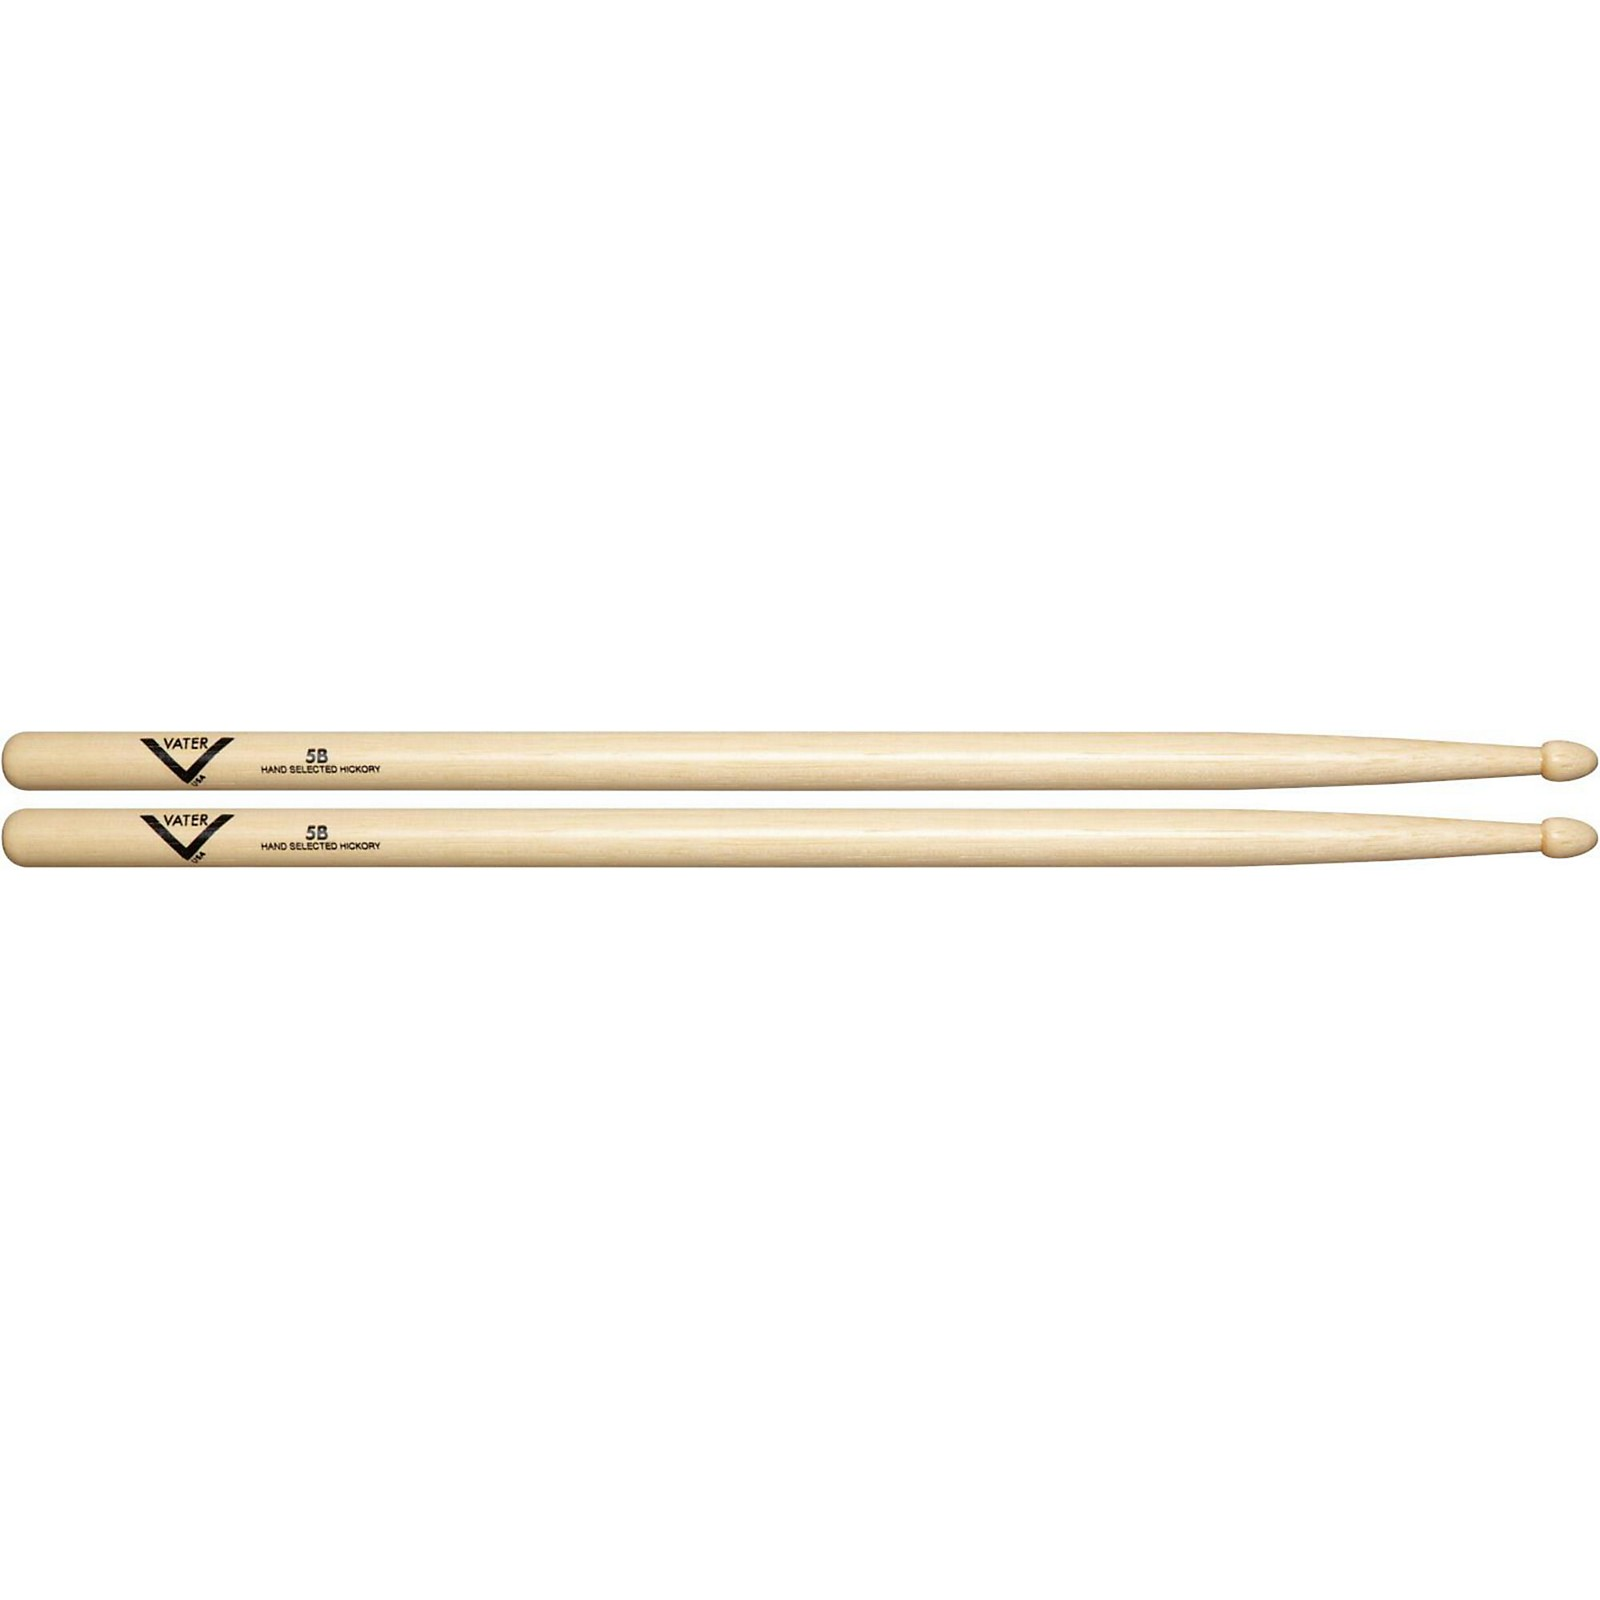 Vater American Hickory 5B Drum Sticks